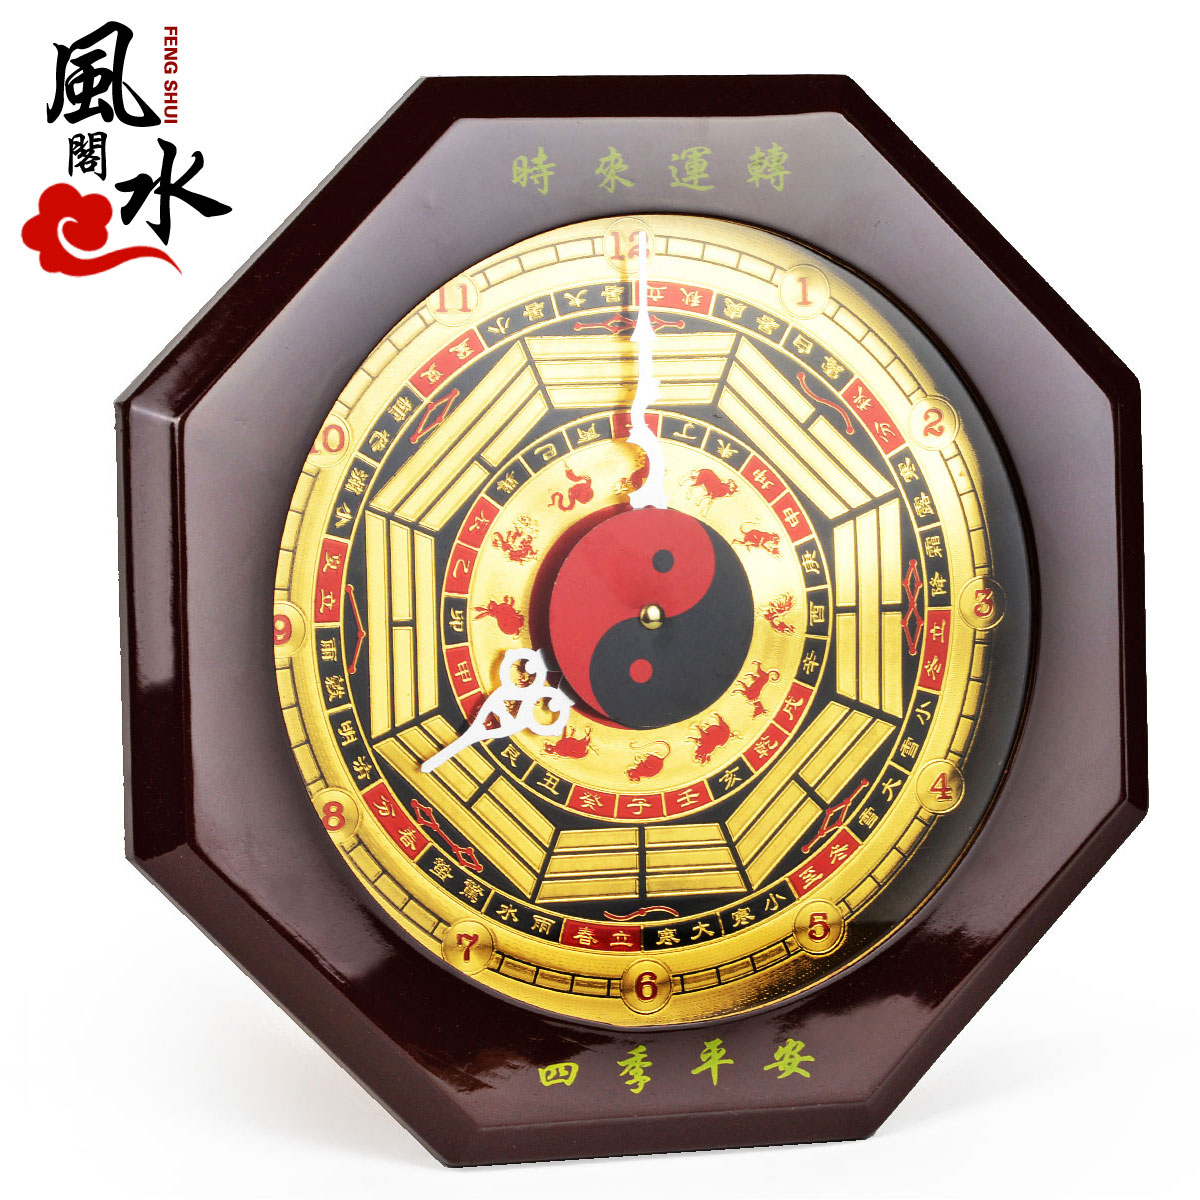 Feng shui court opening mahogany feng shui bagua compass bell bell clocks living room wall clock fortunes lucky lucky